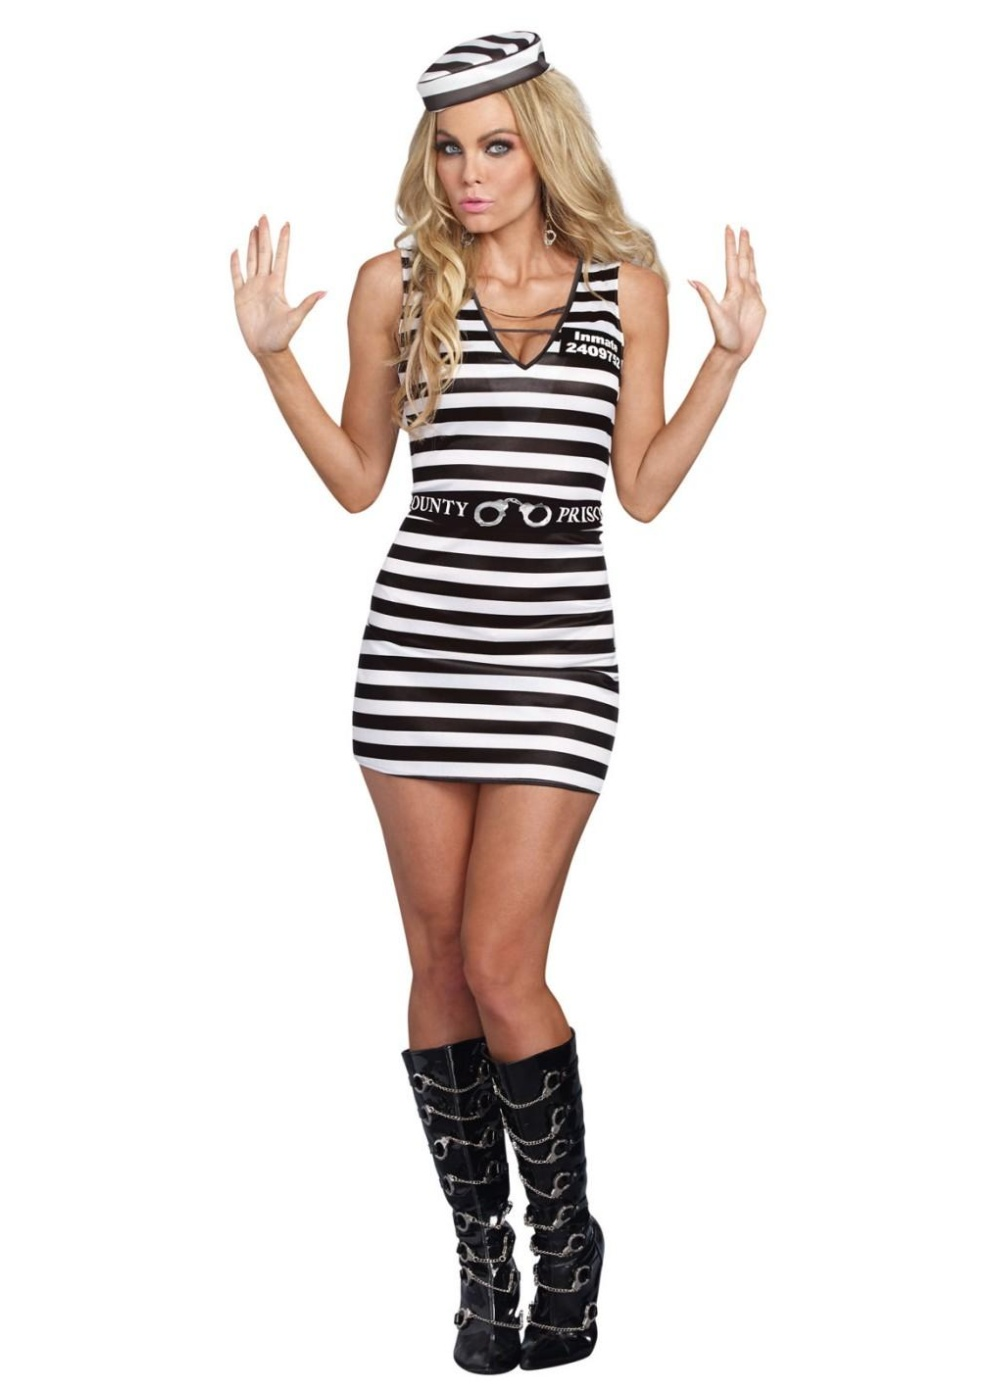 Prisoner Halloween Costume